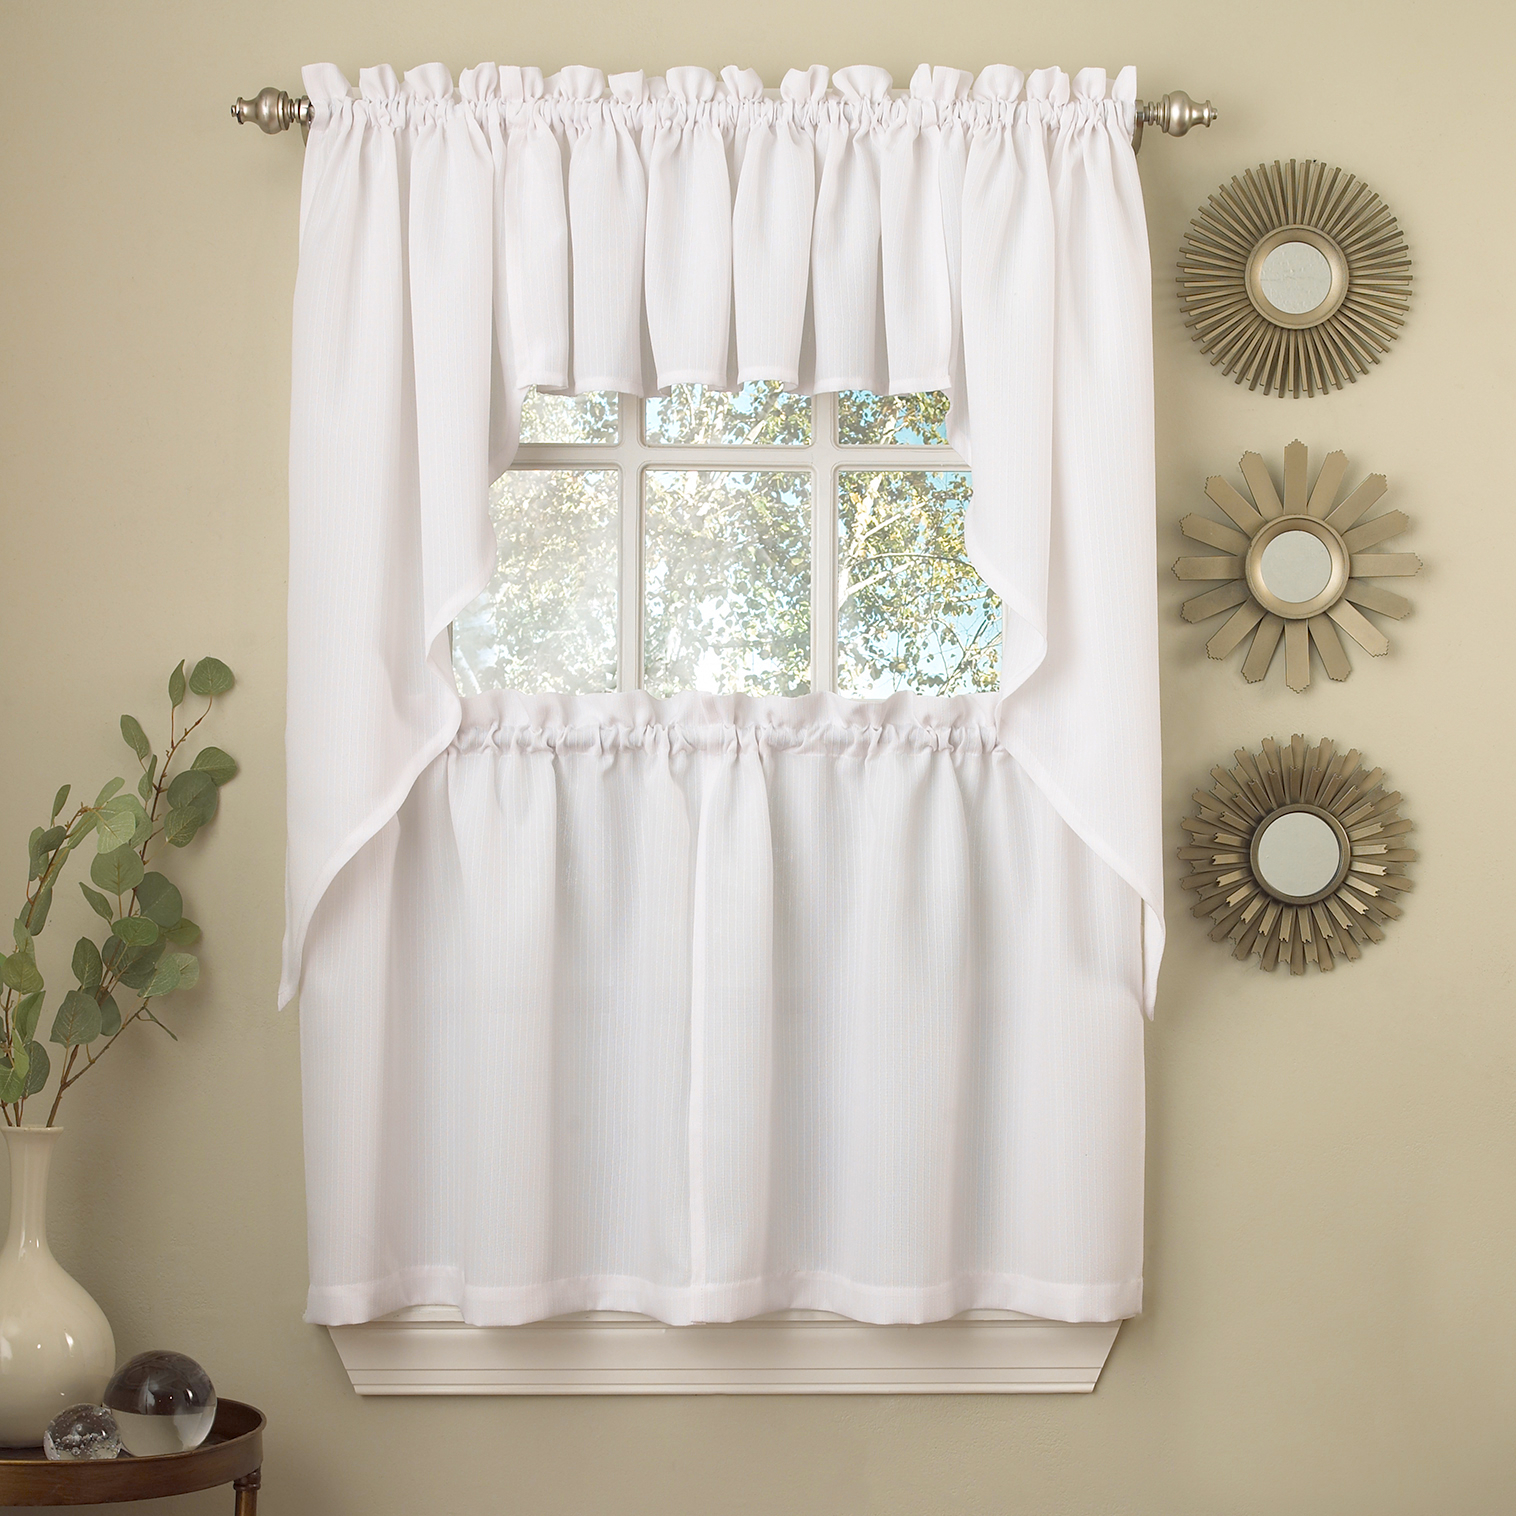 Details About White Solid Opaque Ribcord Kitchen Curtains – Choice Of Tiers Valance Or Swag Within Semi Sheer Rod Pocket Kitchen Curtain Valance And Tiers Sets (View 6 of 20)